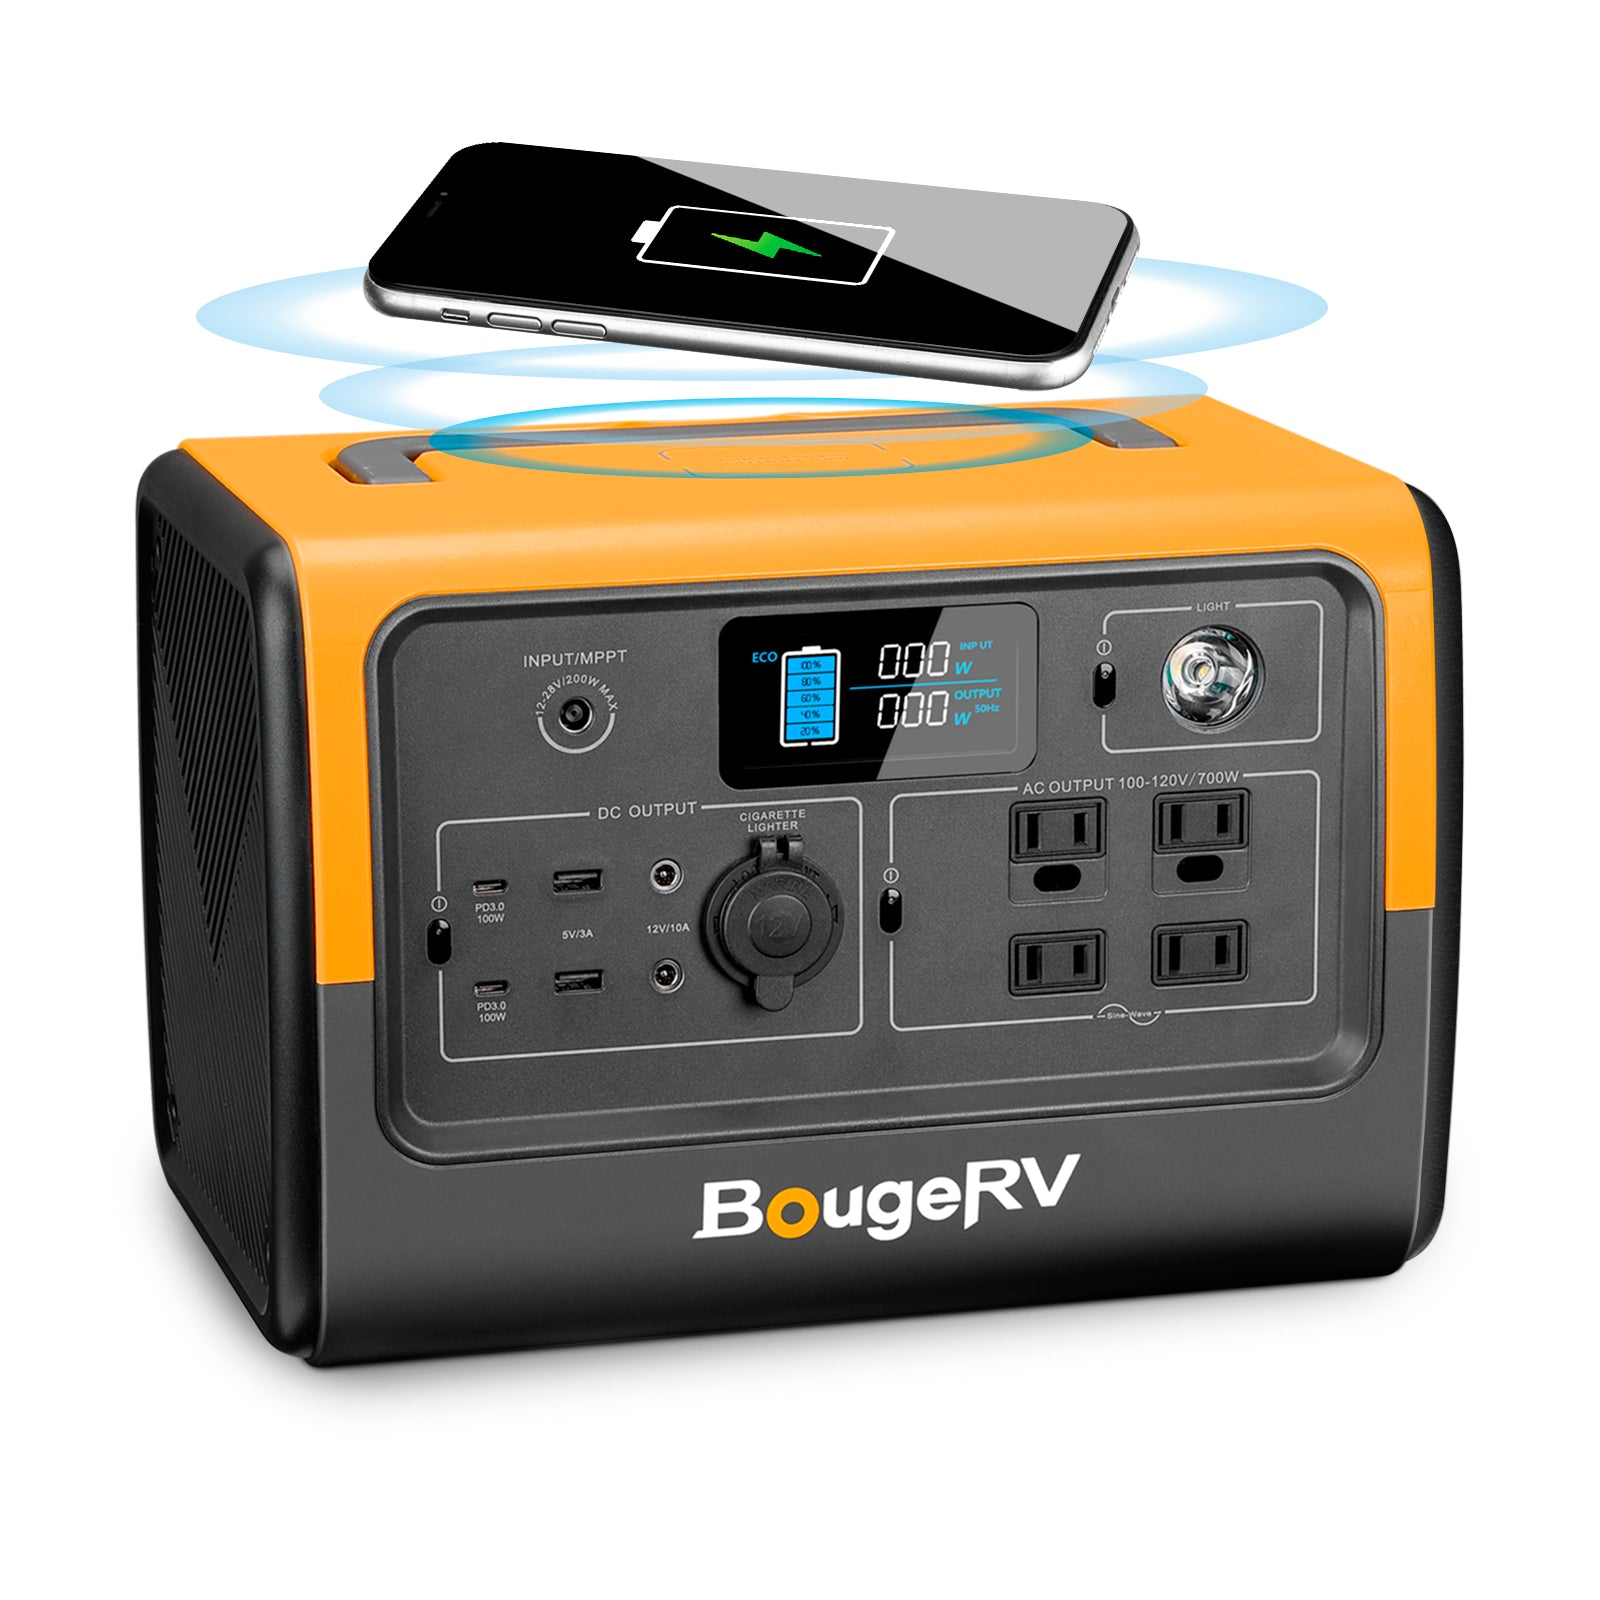 BougeRV 716Wh Portable Power Station